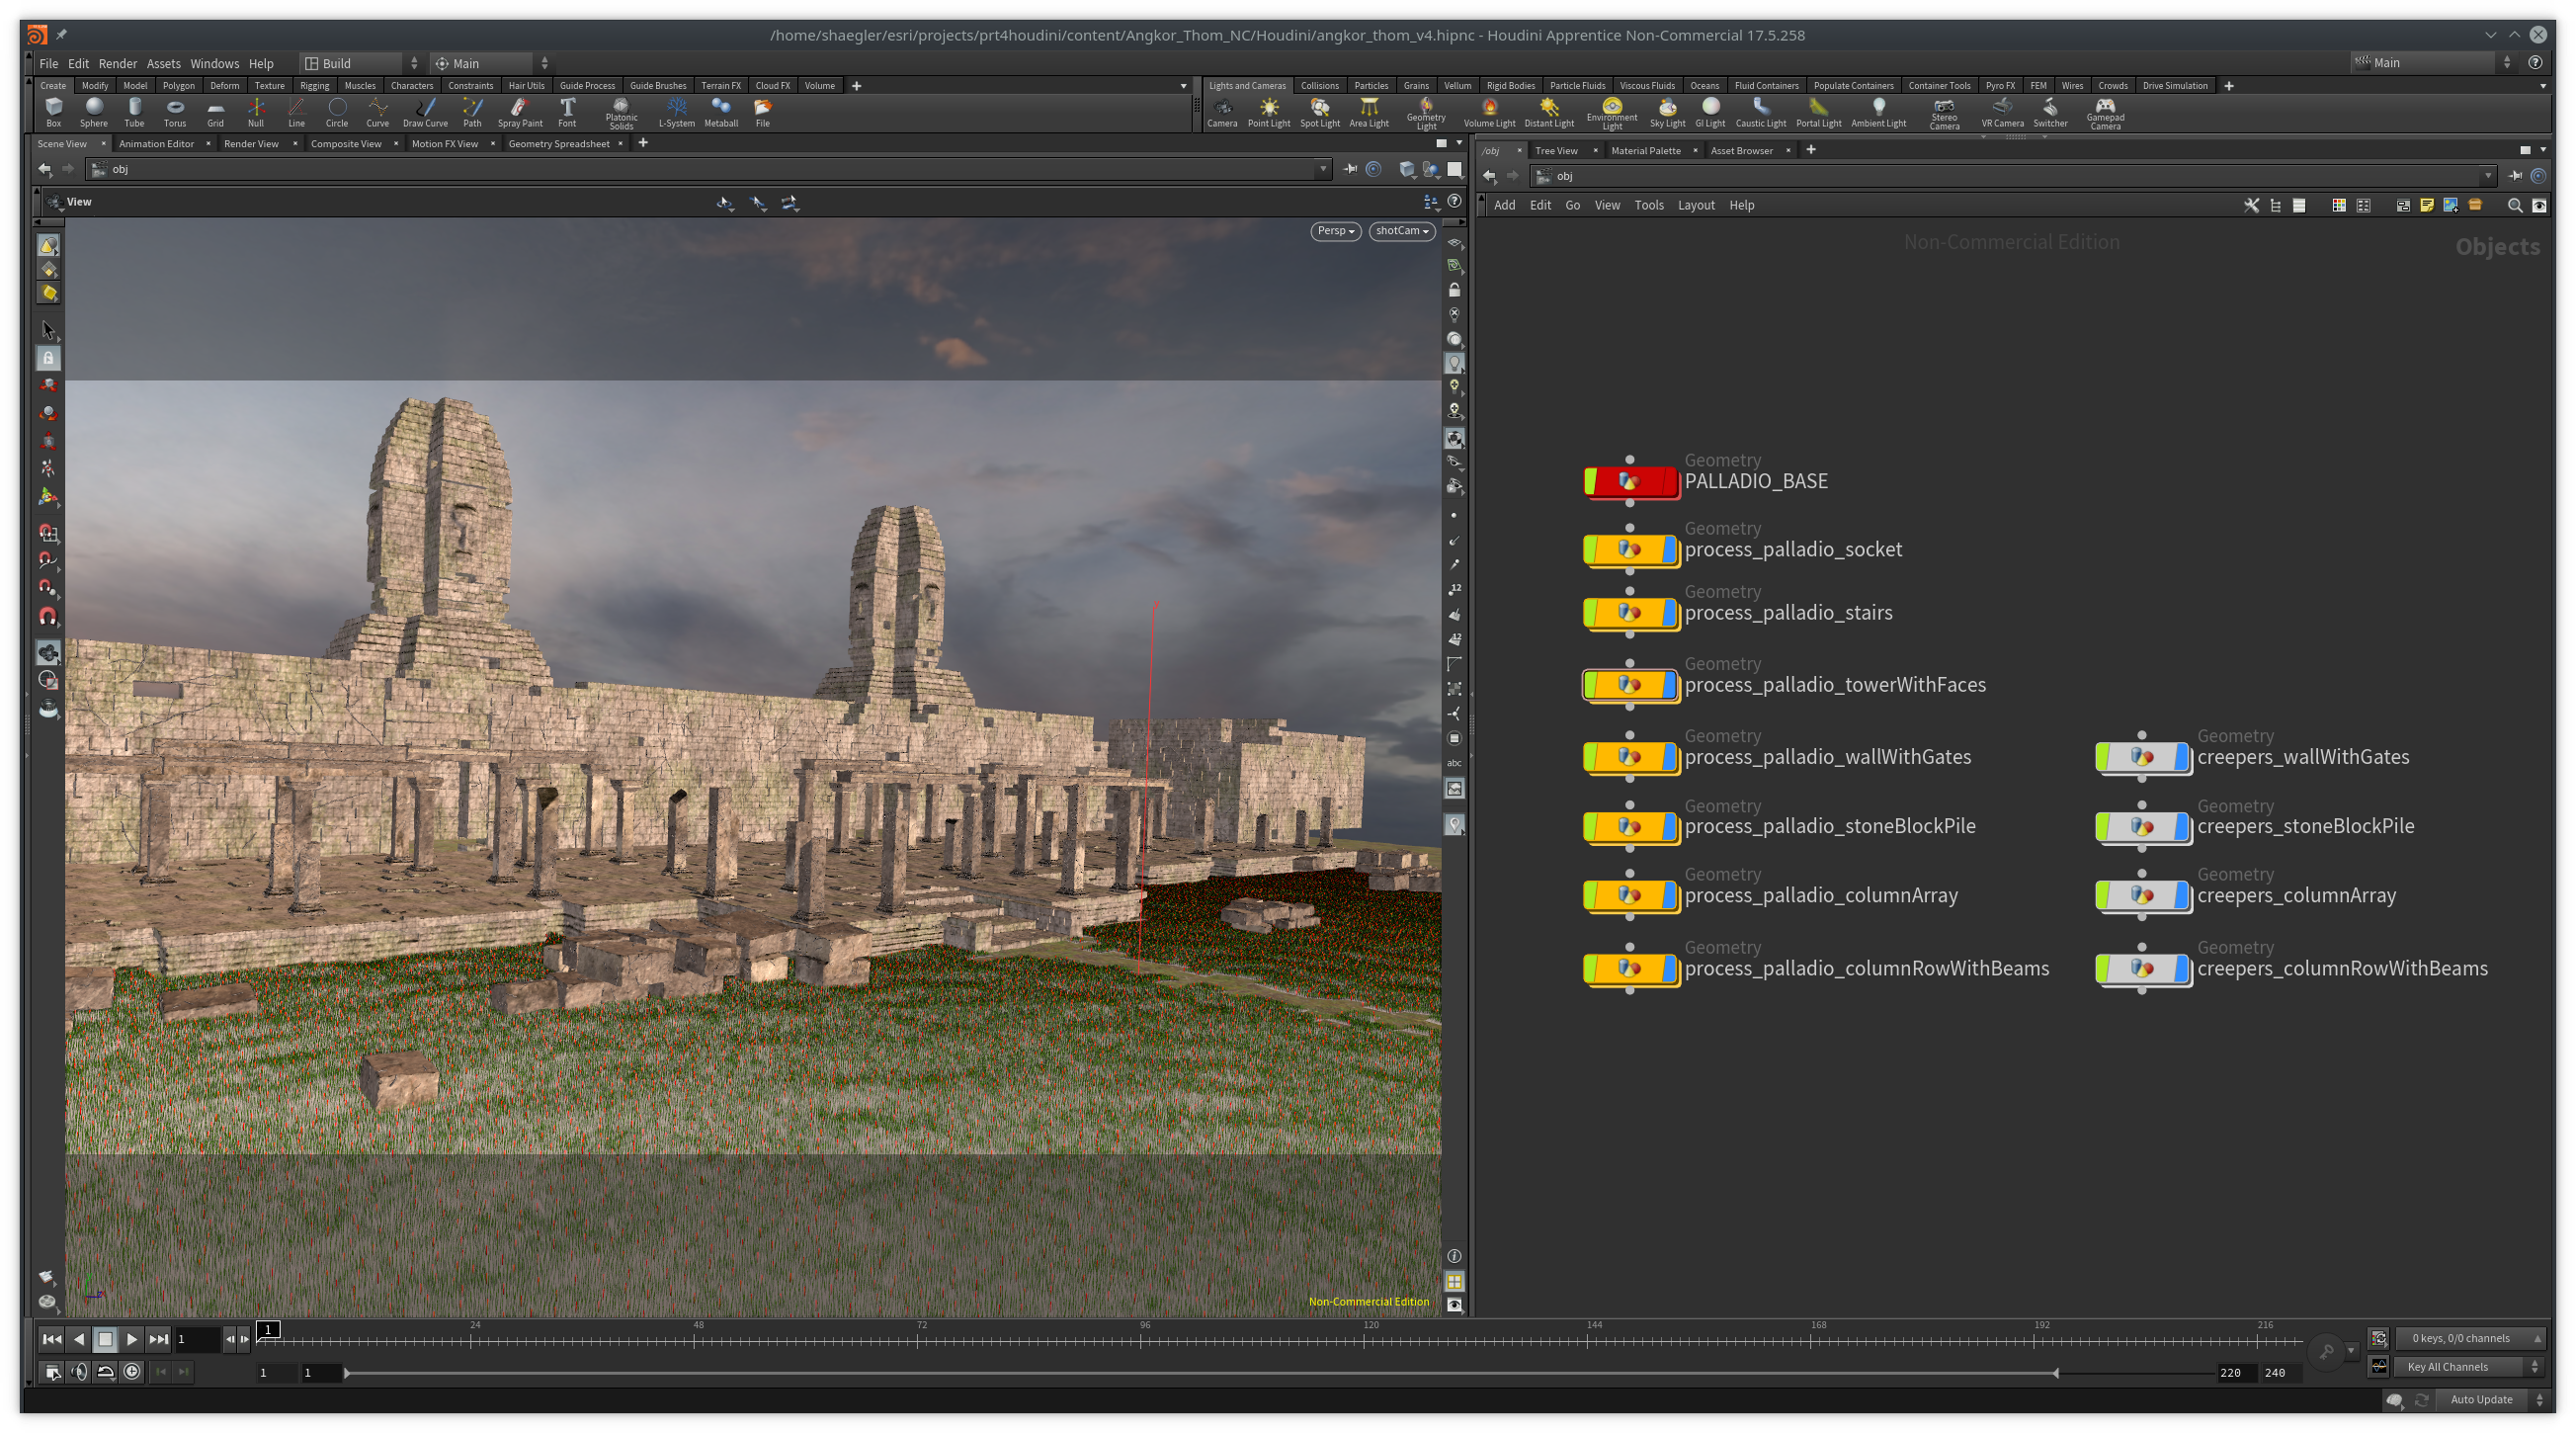 Palladio - CityEngine Plugin for Houdini | Palladio enables the